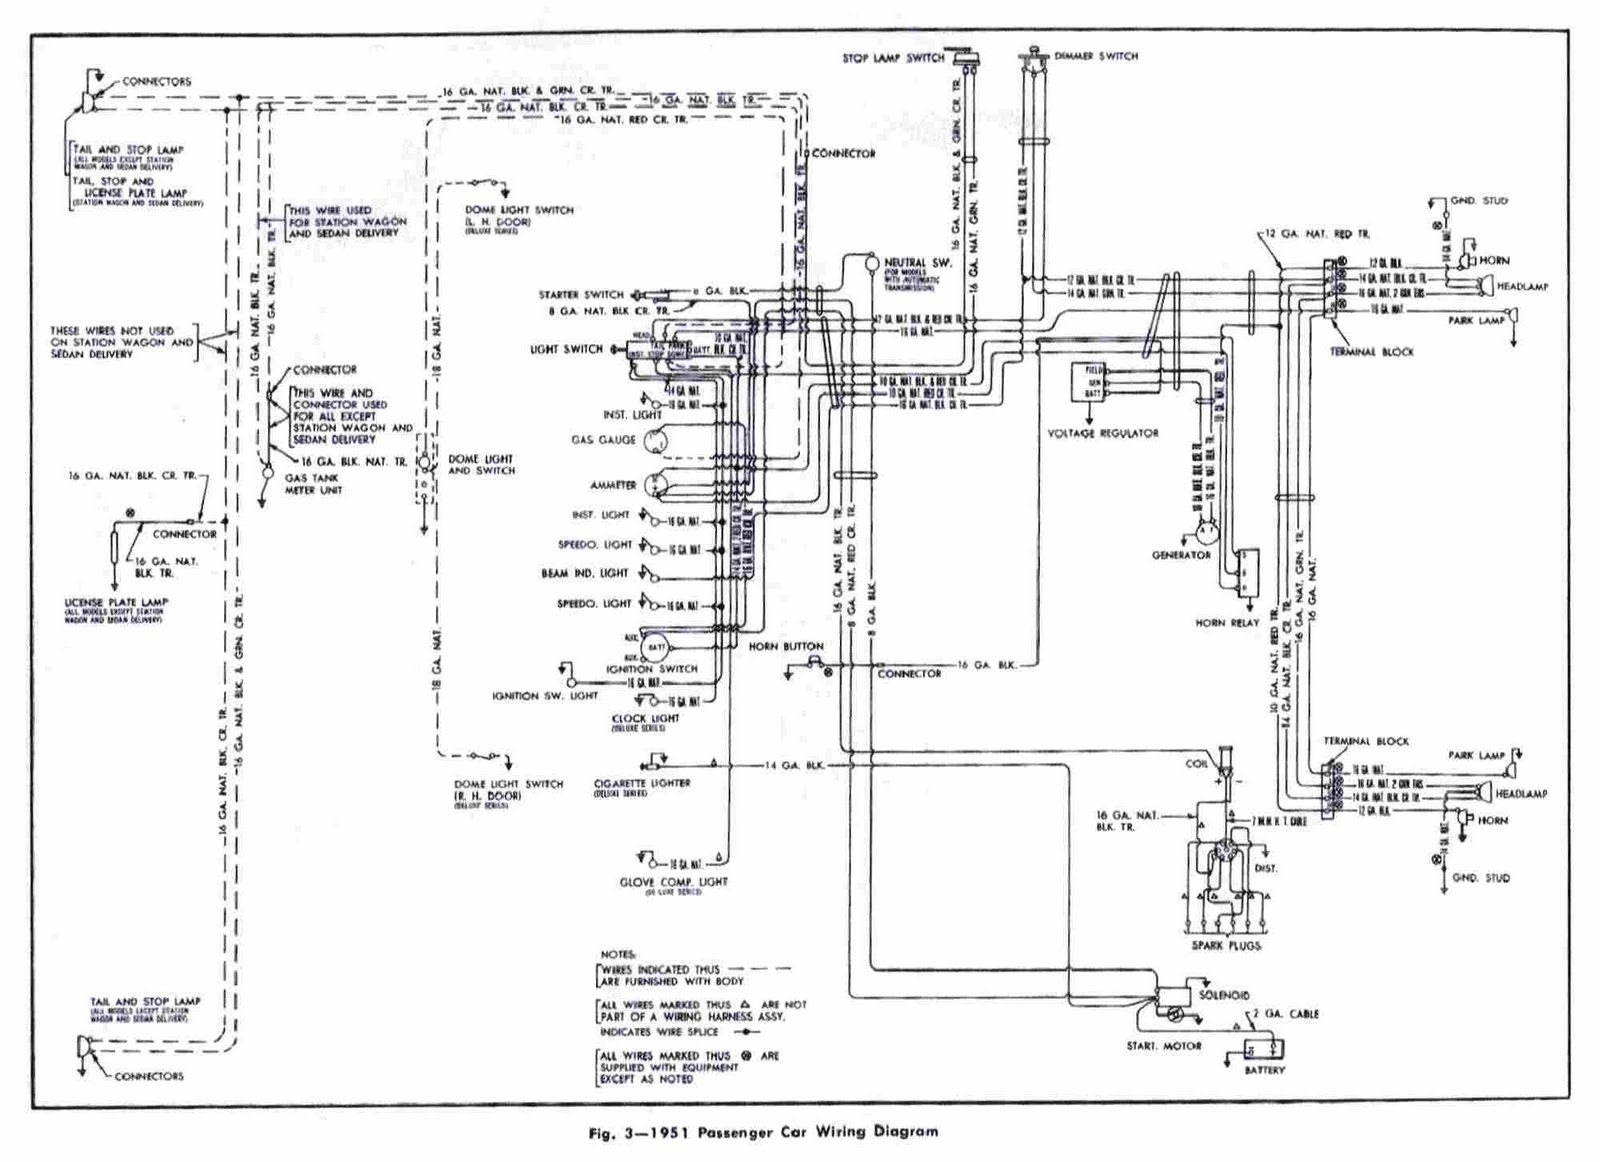 wire a light switch diagram loft wiring and schematics perch gill chevrolet passenger car 1951 all about